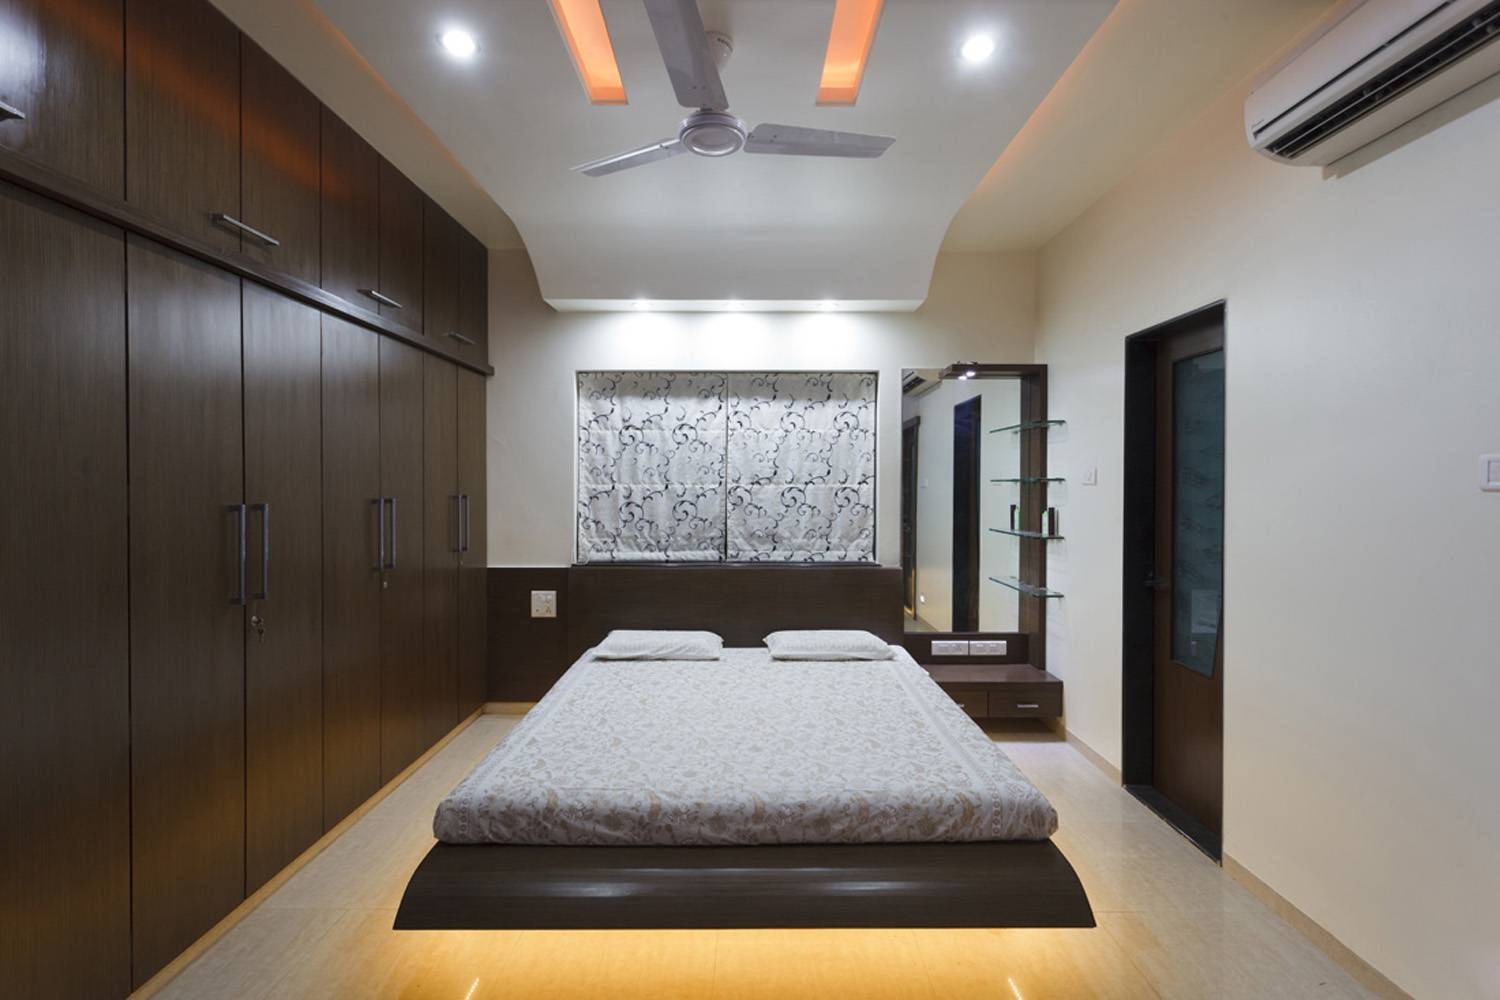 Bed room interior design portfolio leading interior for Interior designs of bedrooms pictures